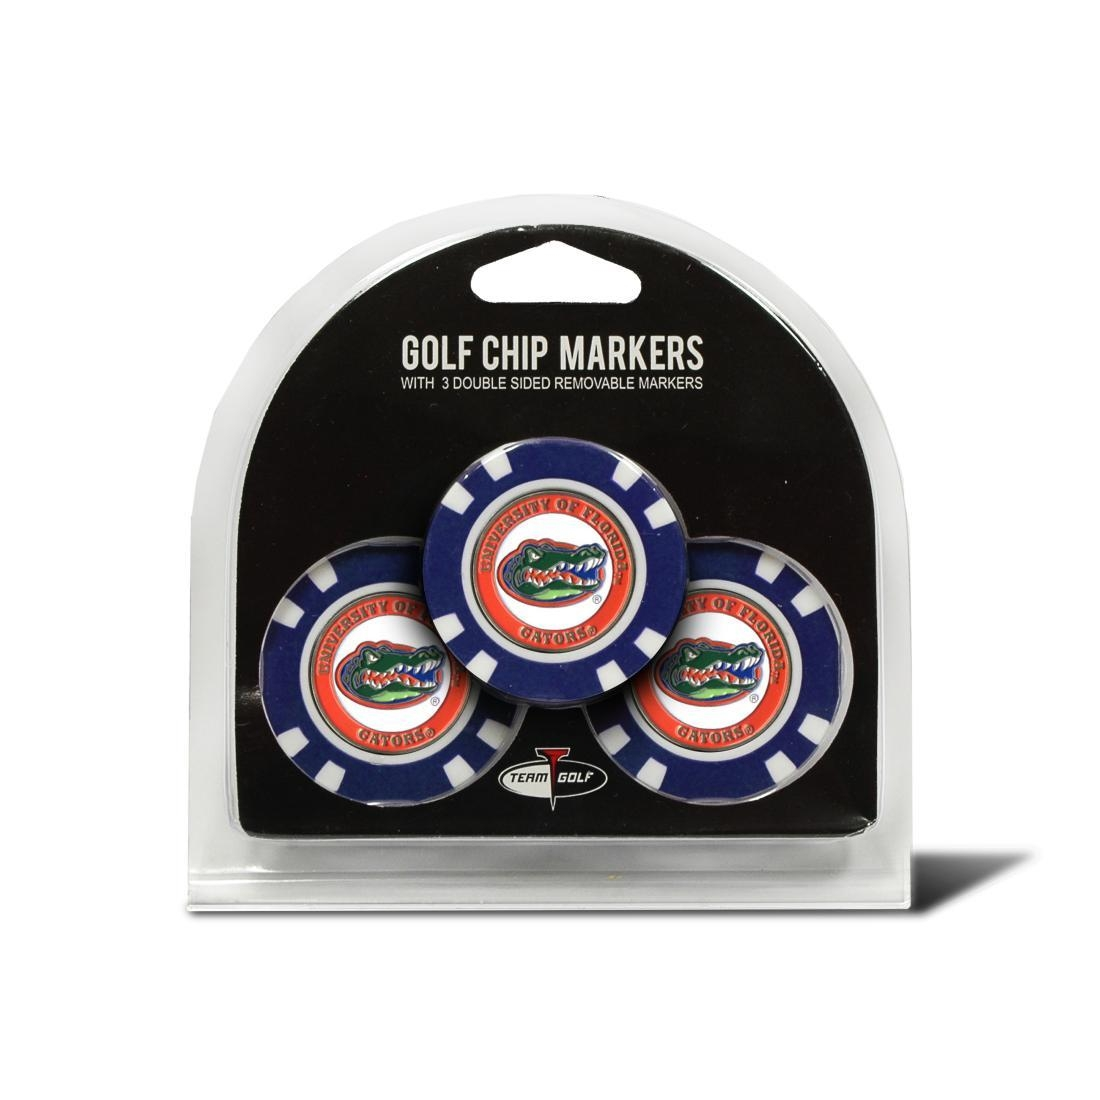 Florida 3 Pack Golf Chip Ball Markers - 20988 - Golf Golf Headcovers Apparel Golf Bags: Golf Ame & Lulu Collection 20988